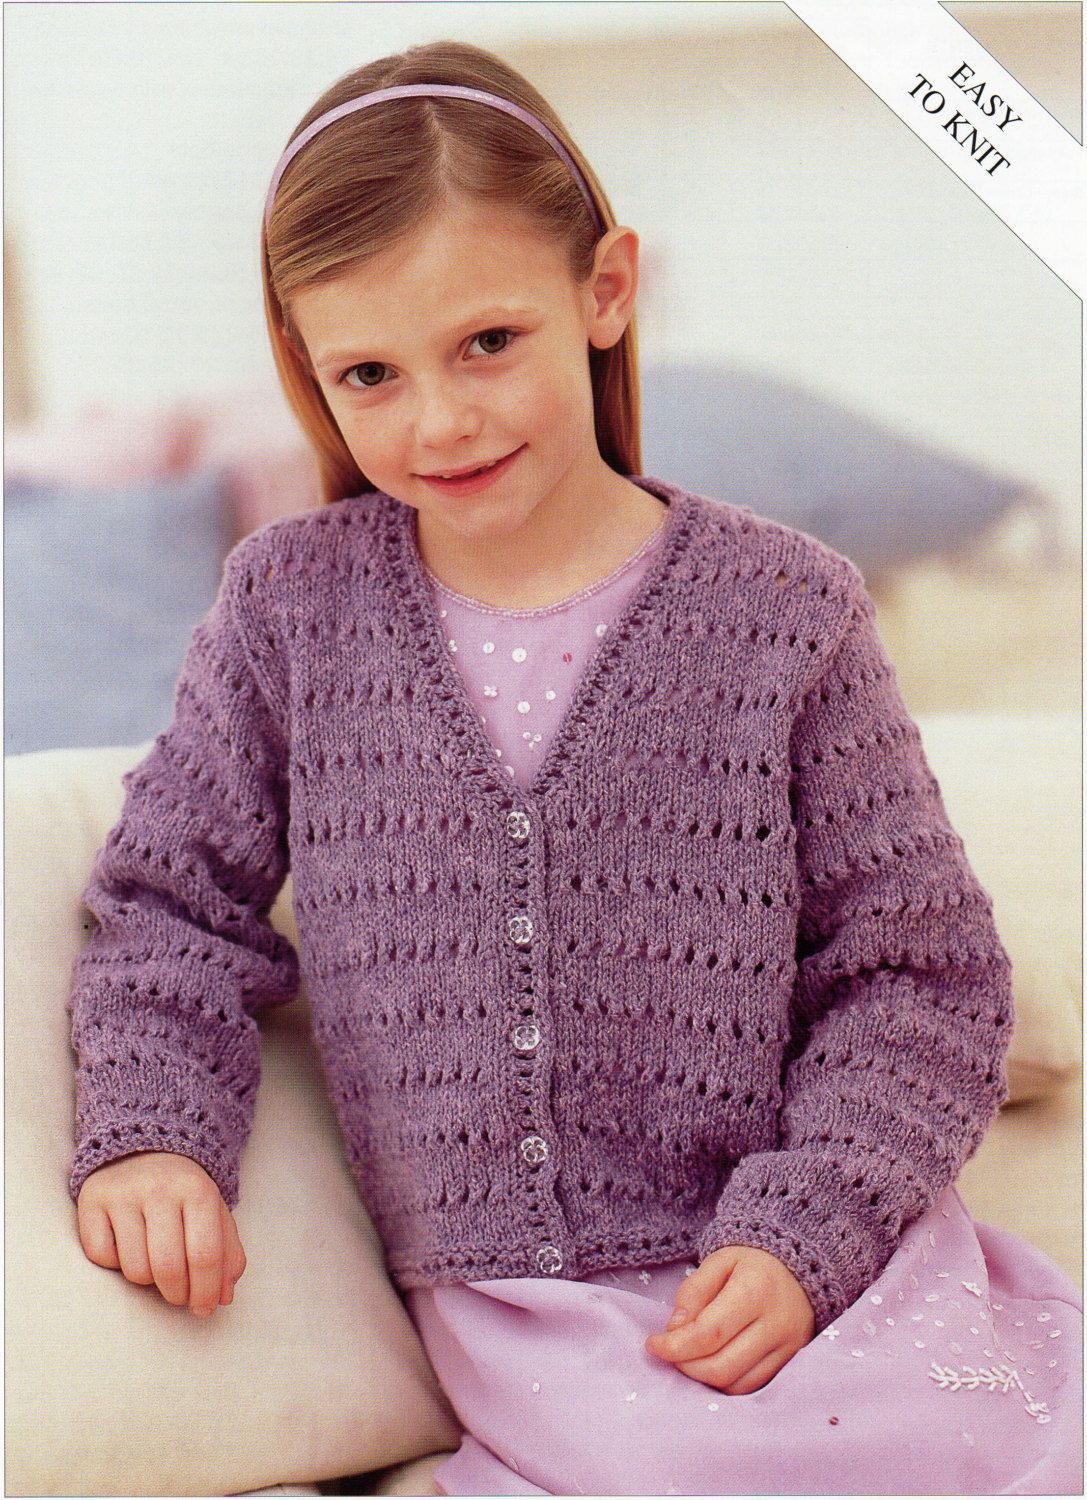 8b2ac2094179 Girls Knitting pattern Girls Cardigan Childs Cardigan Easy Knit V neck  Cardigan 22-32inch DK Childrens Knitting Pattern PDF Instant Download by  Minihobo on ...